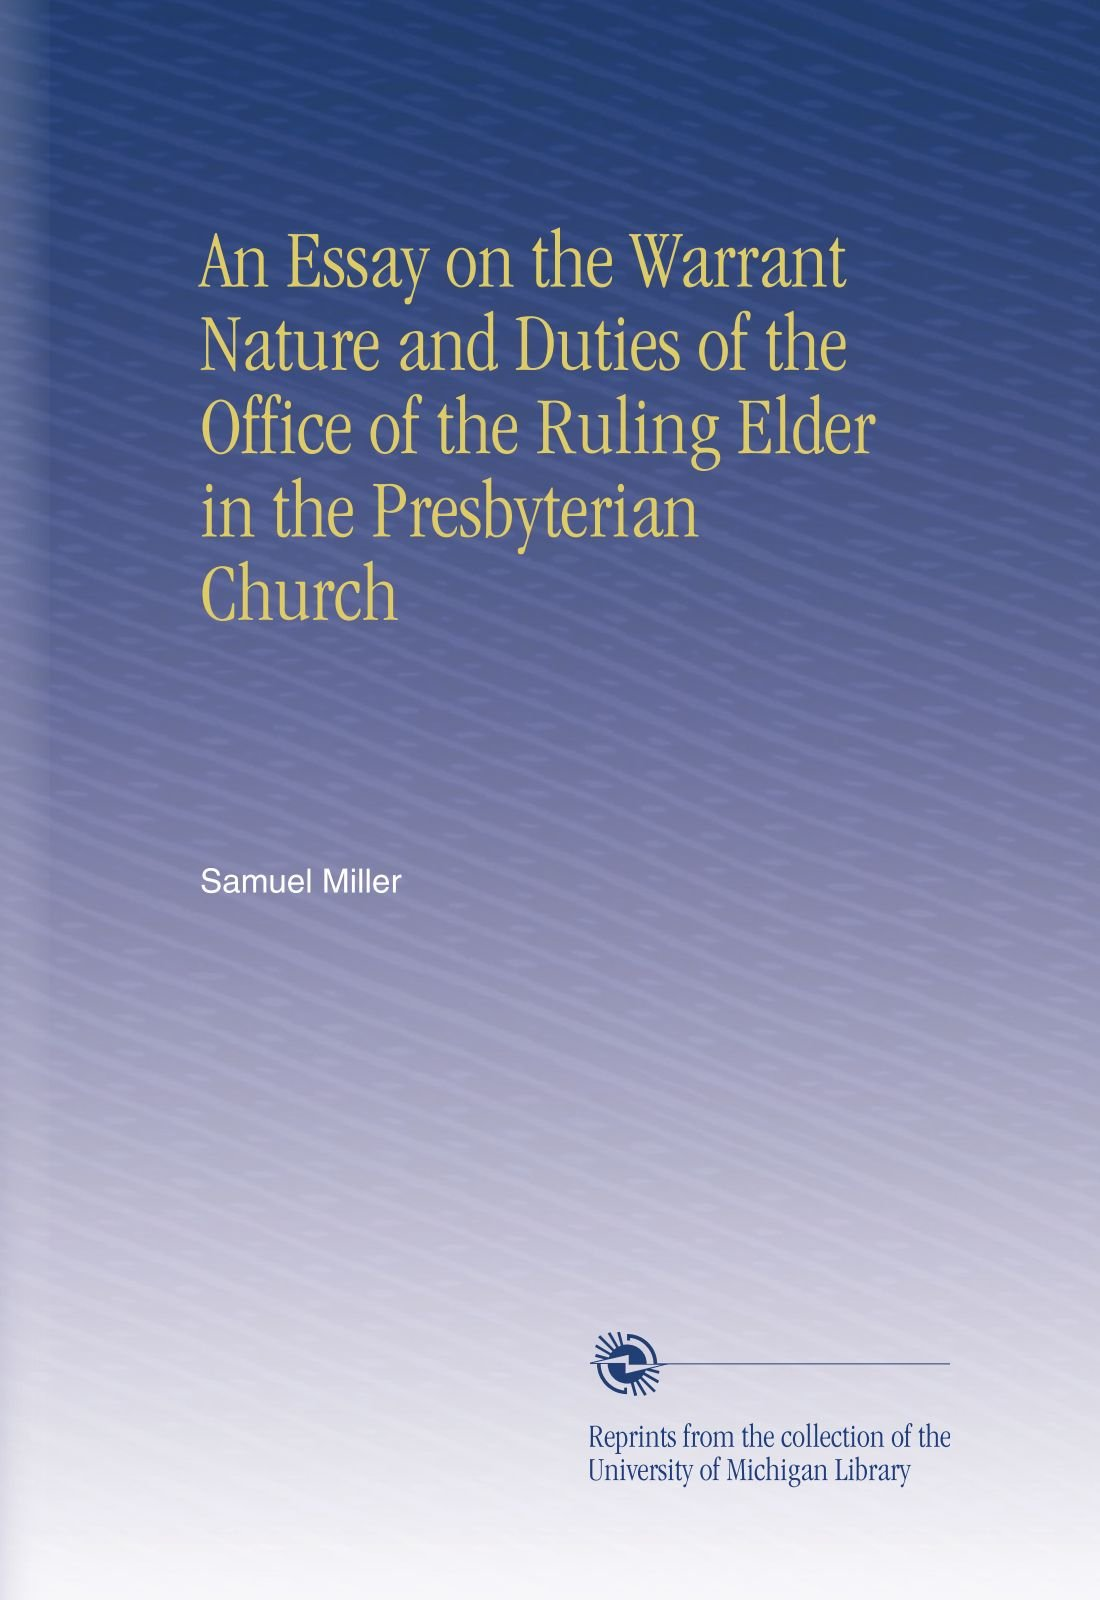 Download An Essay on the Warrant Nature and Duties of the Office of the Ruling Elder in the Presbyterian Church PDF